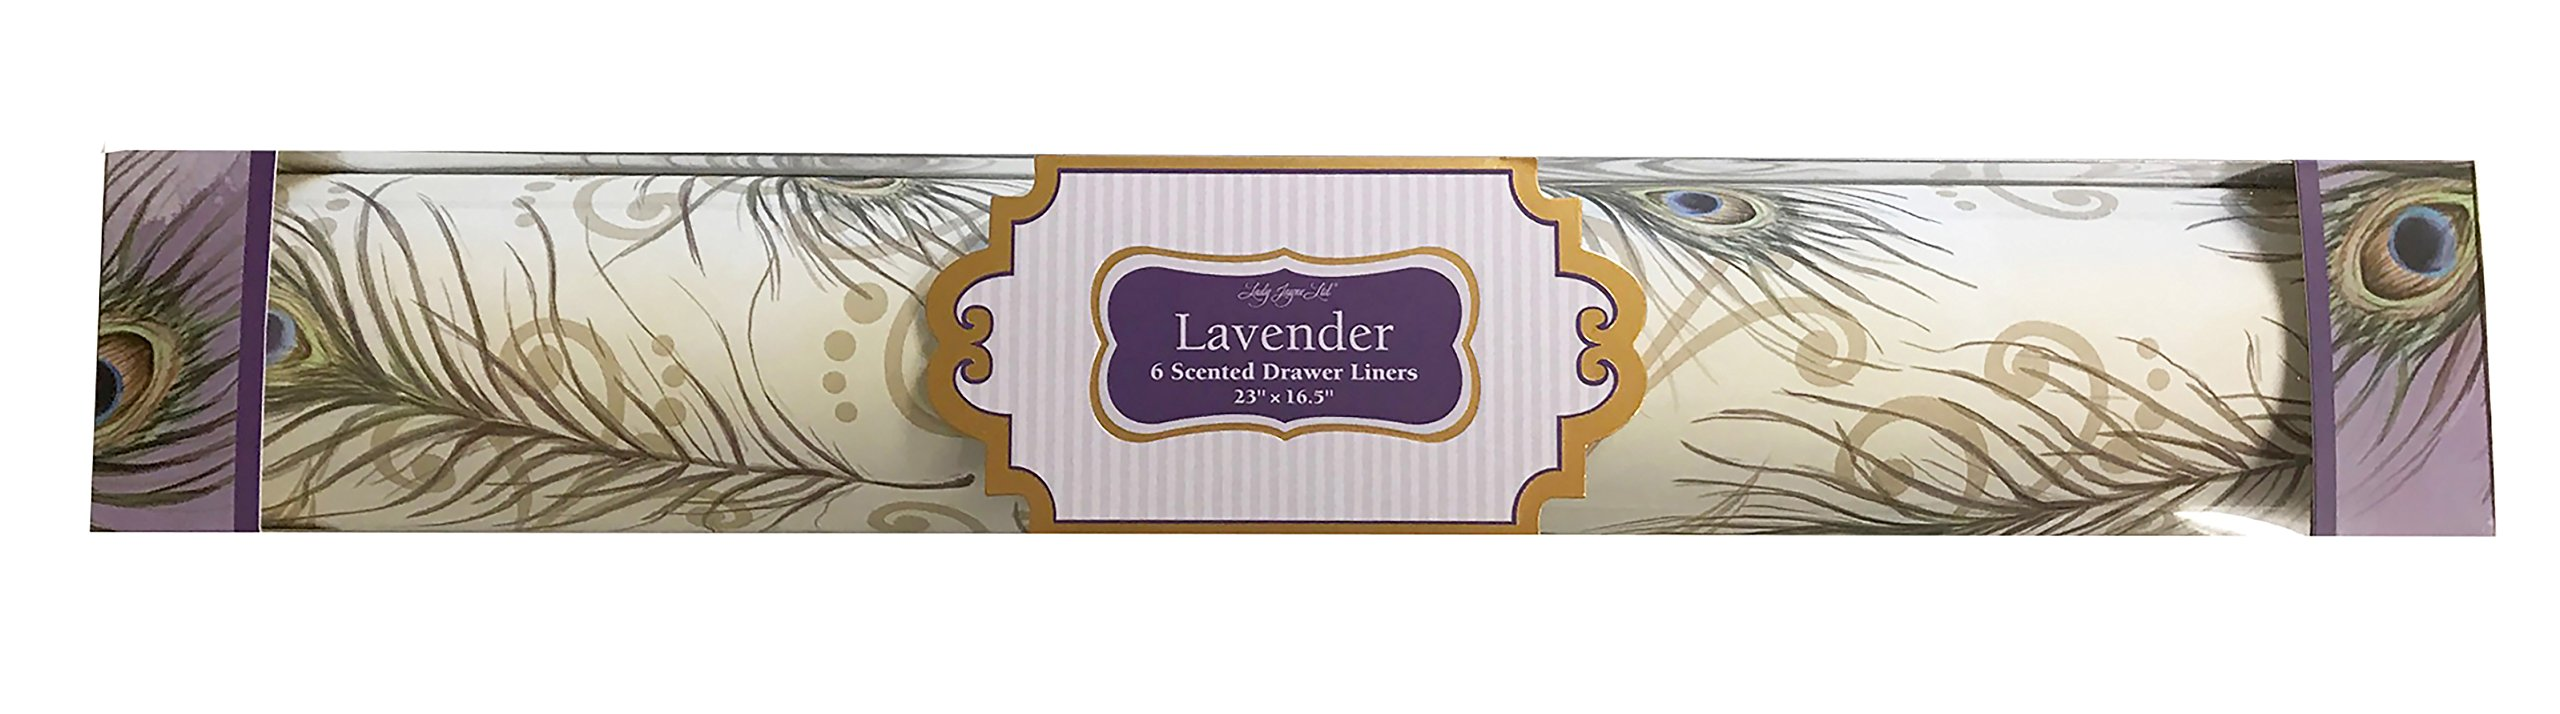 Lady Jayne Lavender Scented Drawer Liners with Feathers on Cream Background, 6 Sheets